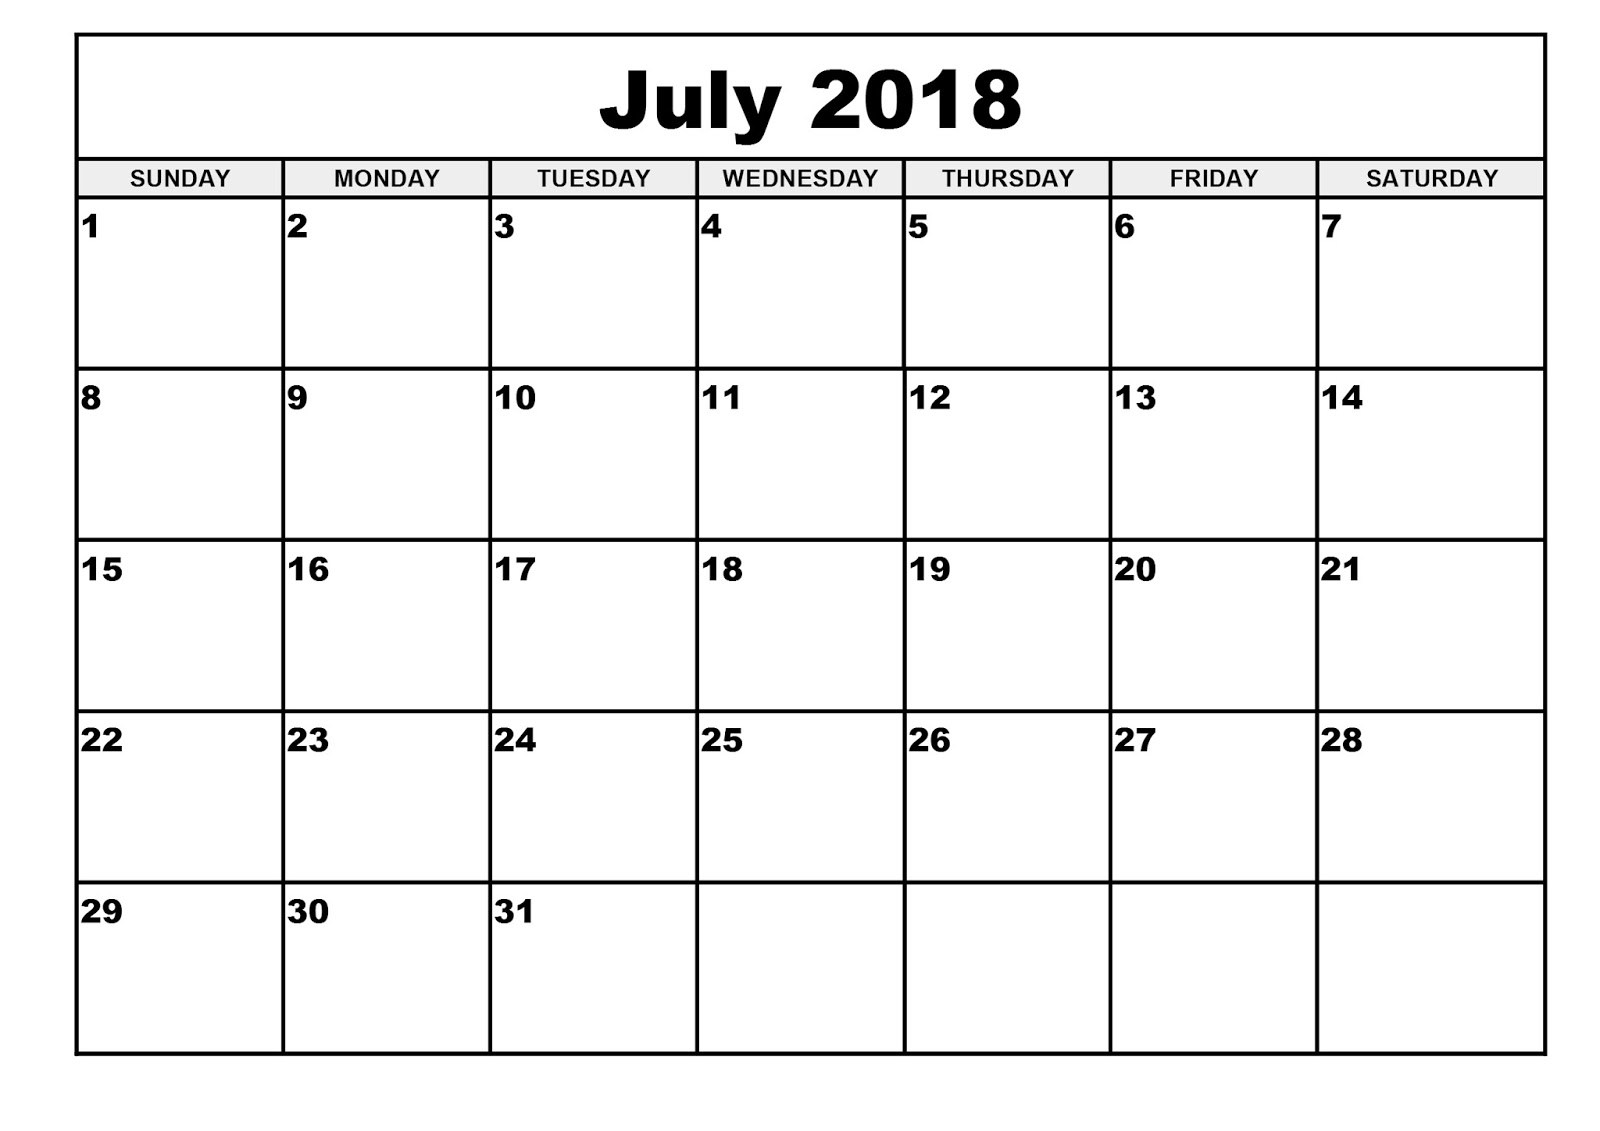 Free July 2018 Calendar Printable Blank Templates - Word Pdf intended for Print Off A Blank Calendar For